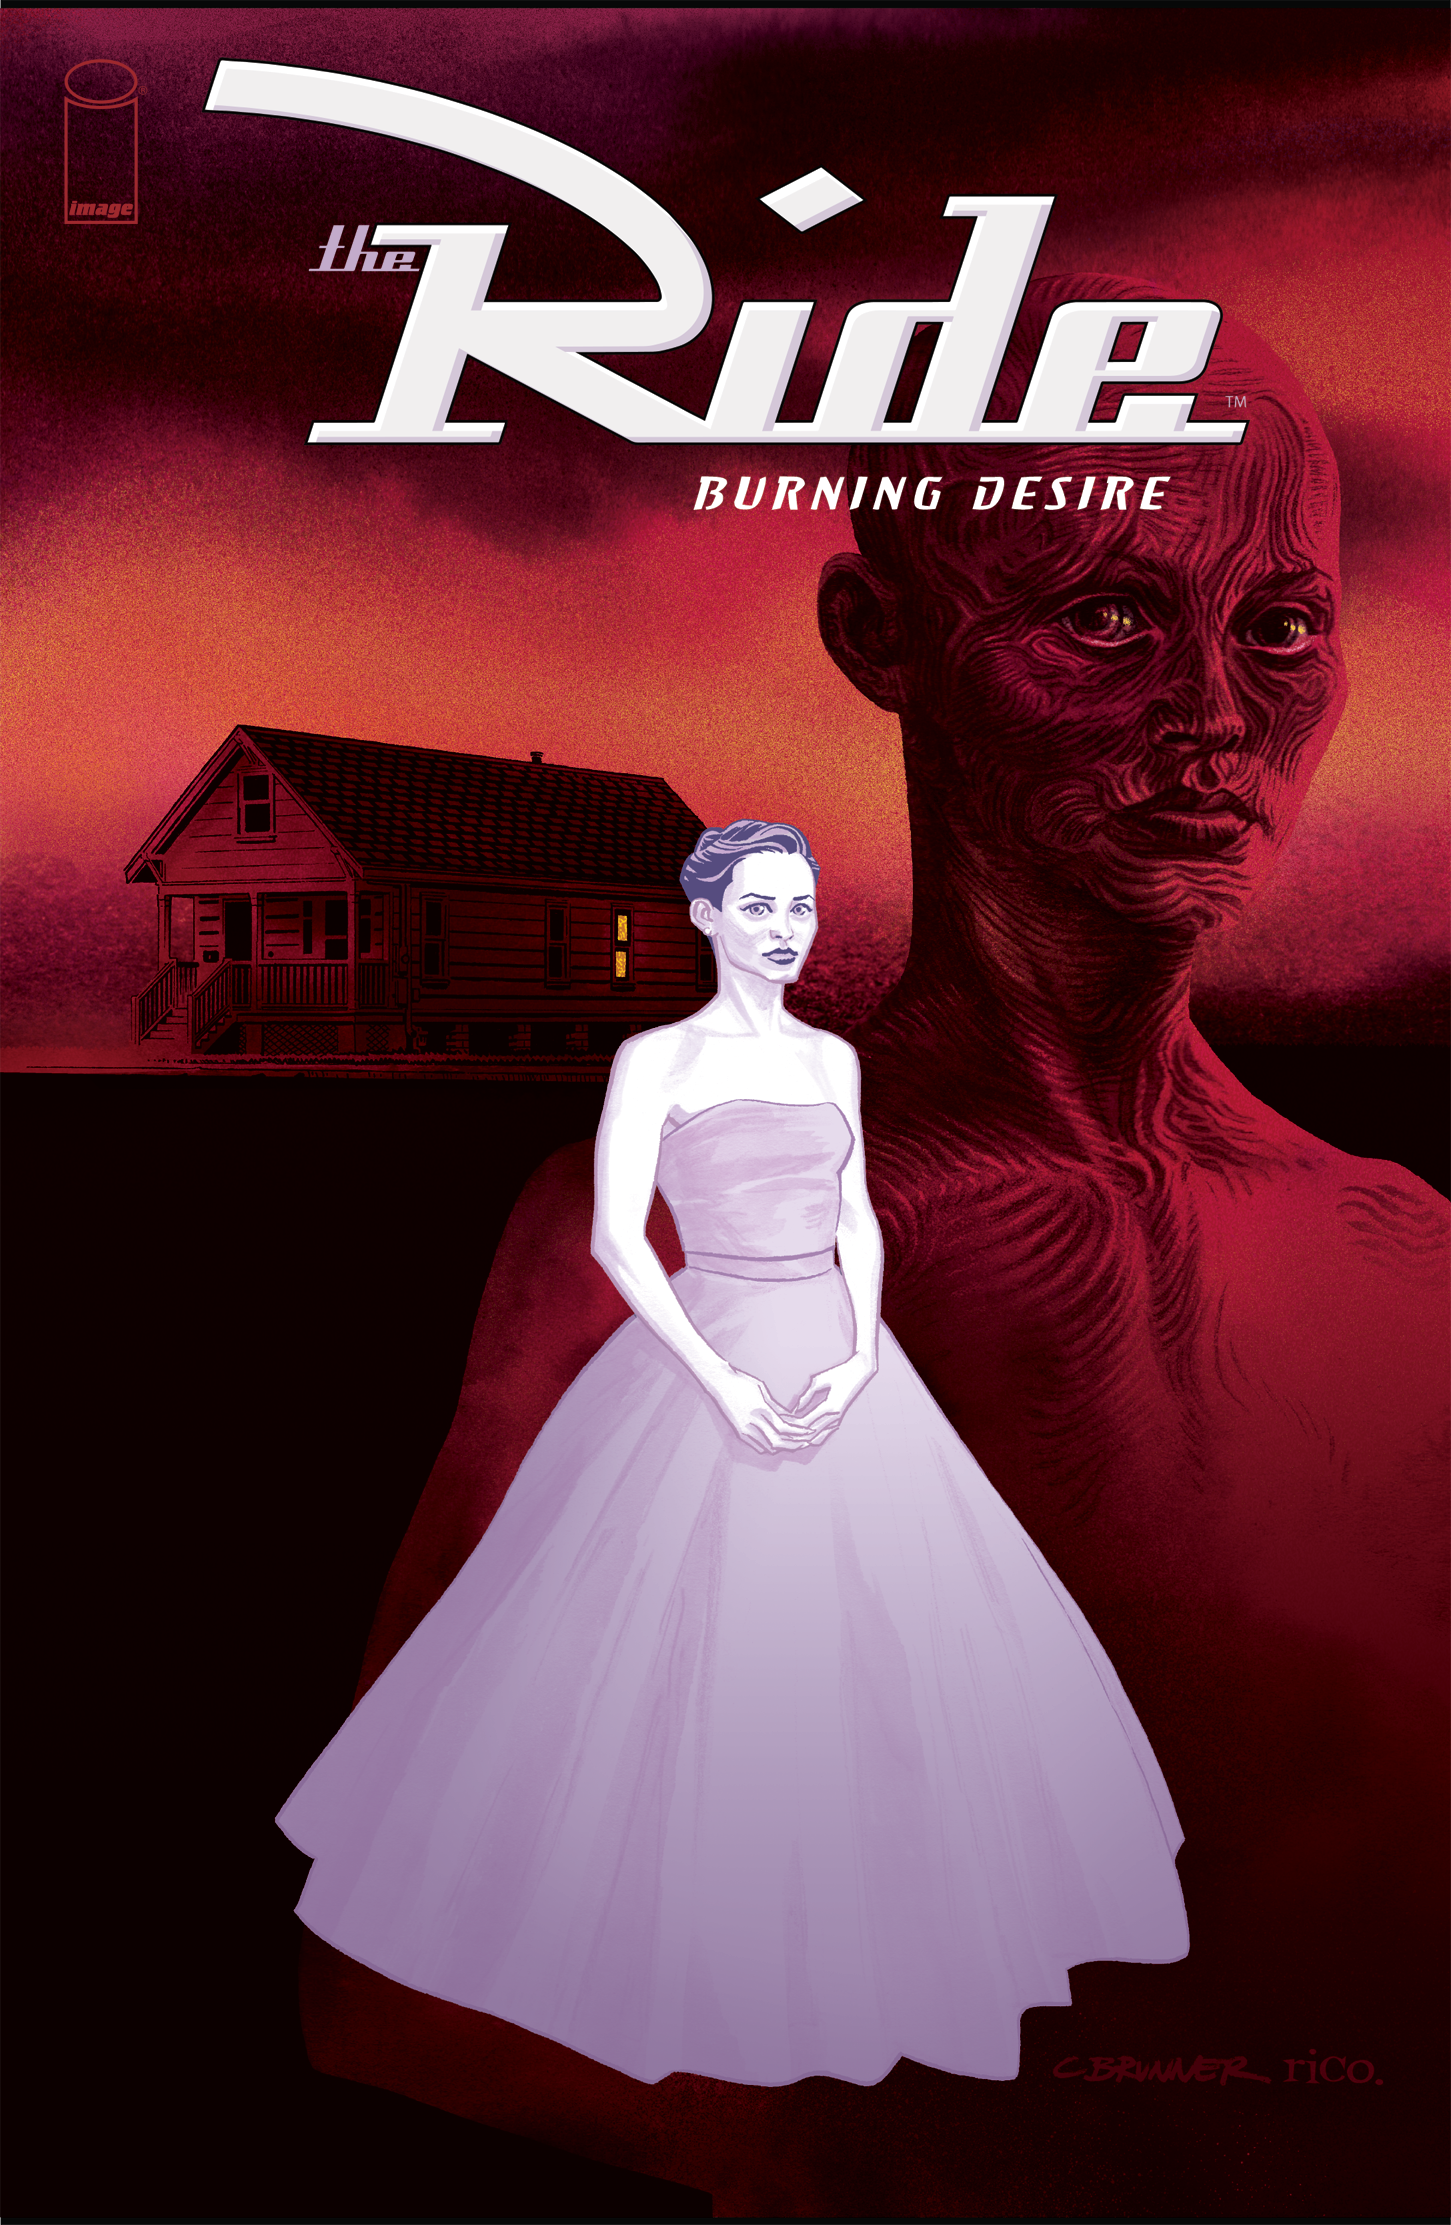 THE RIDE: Burning Desire #2